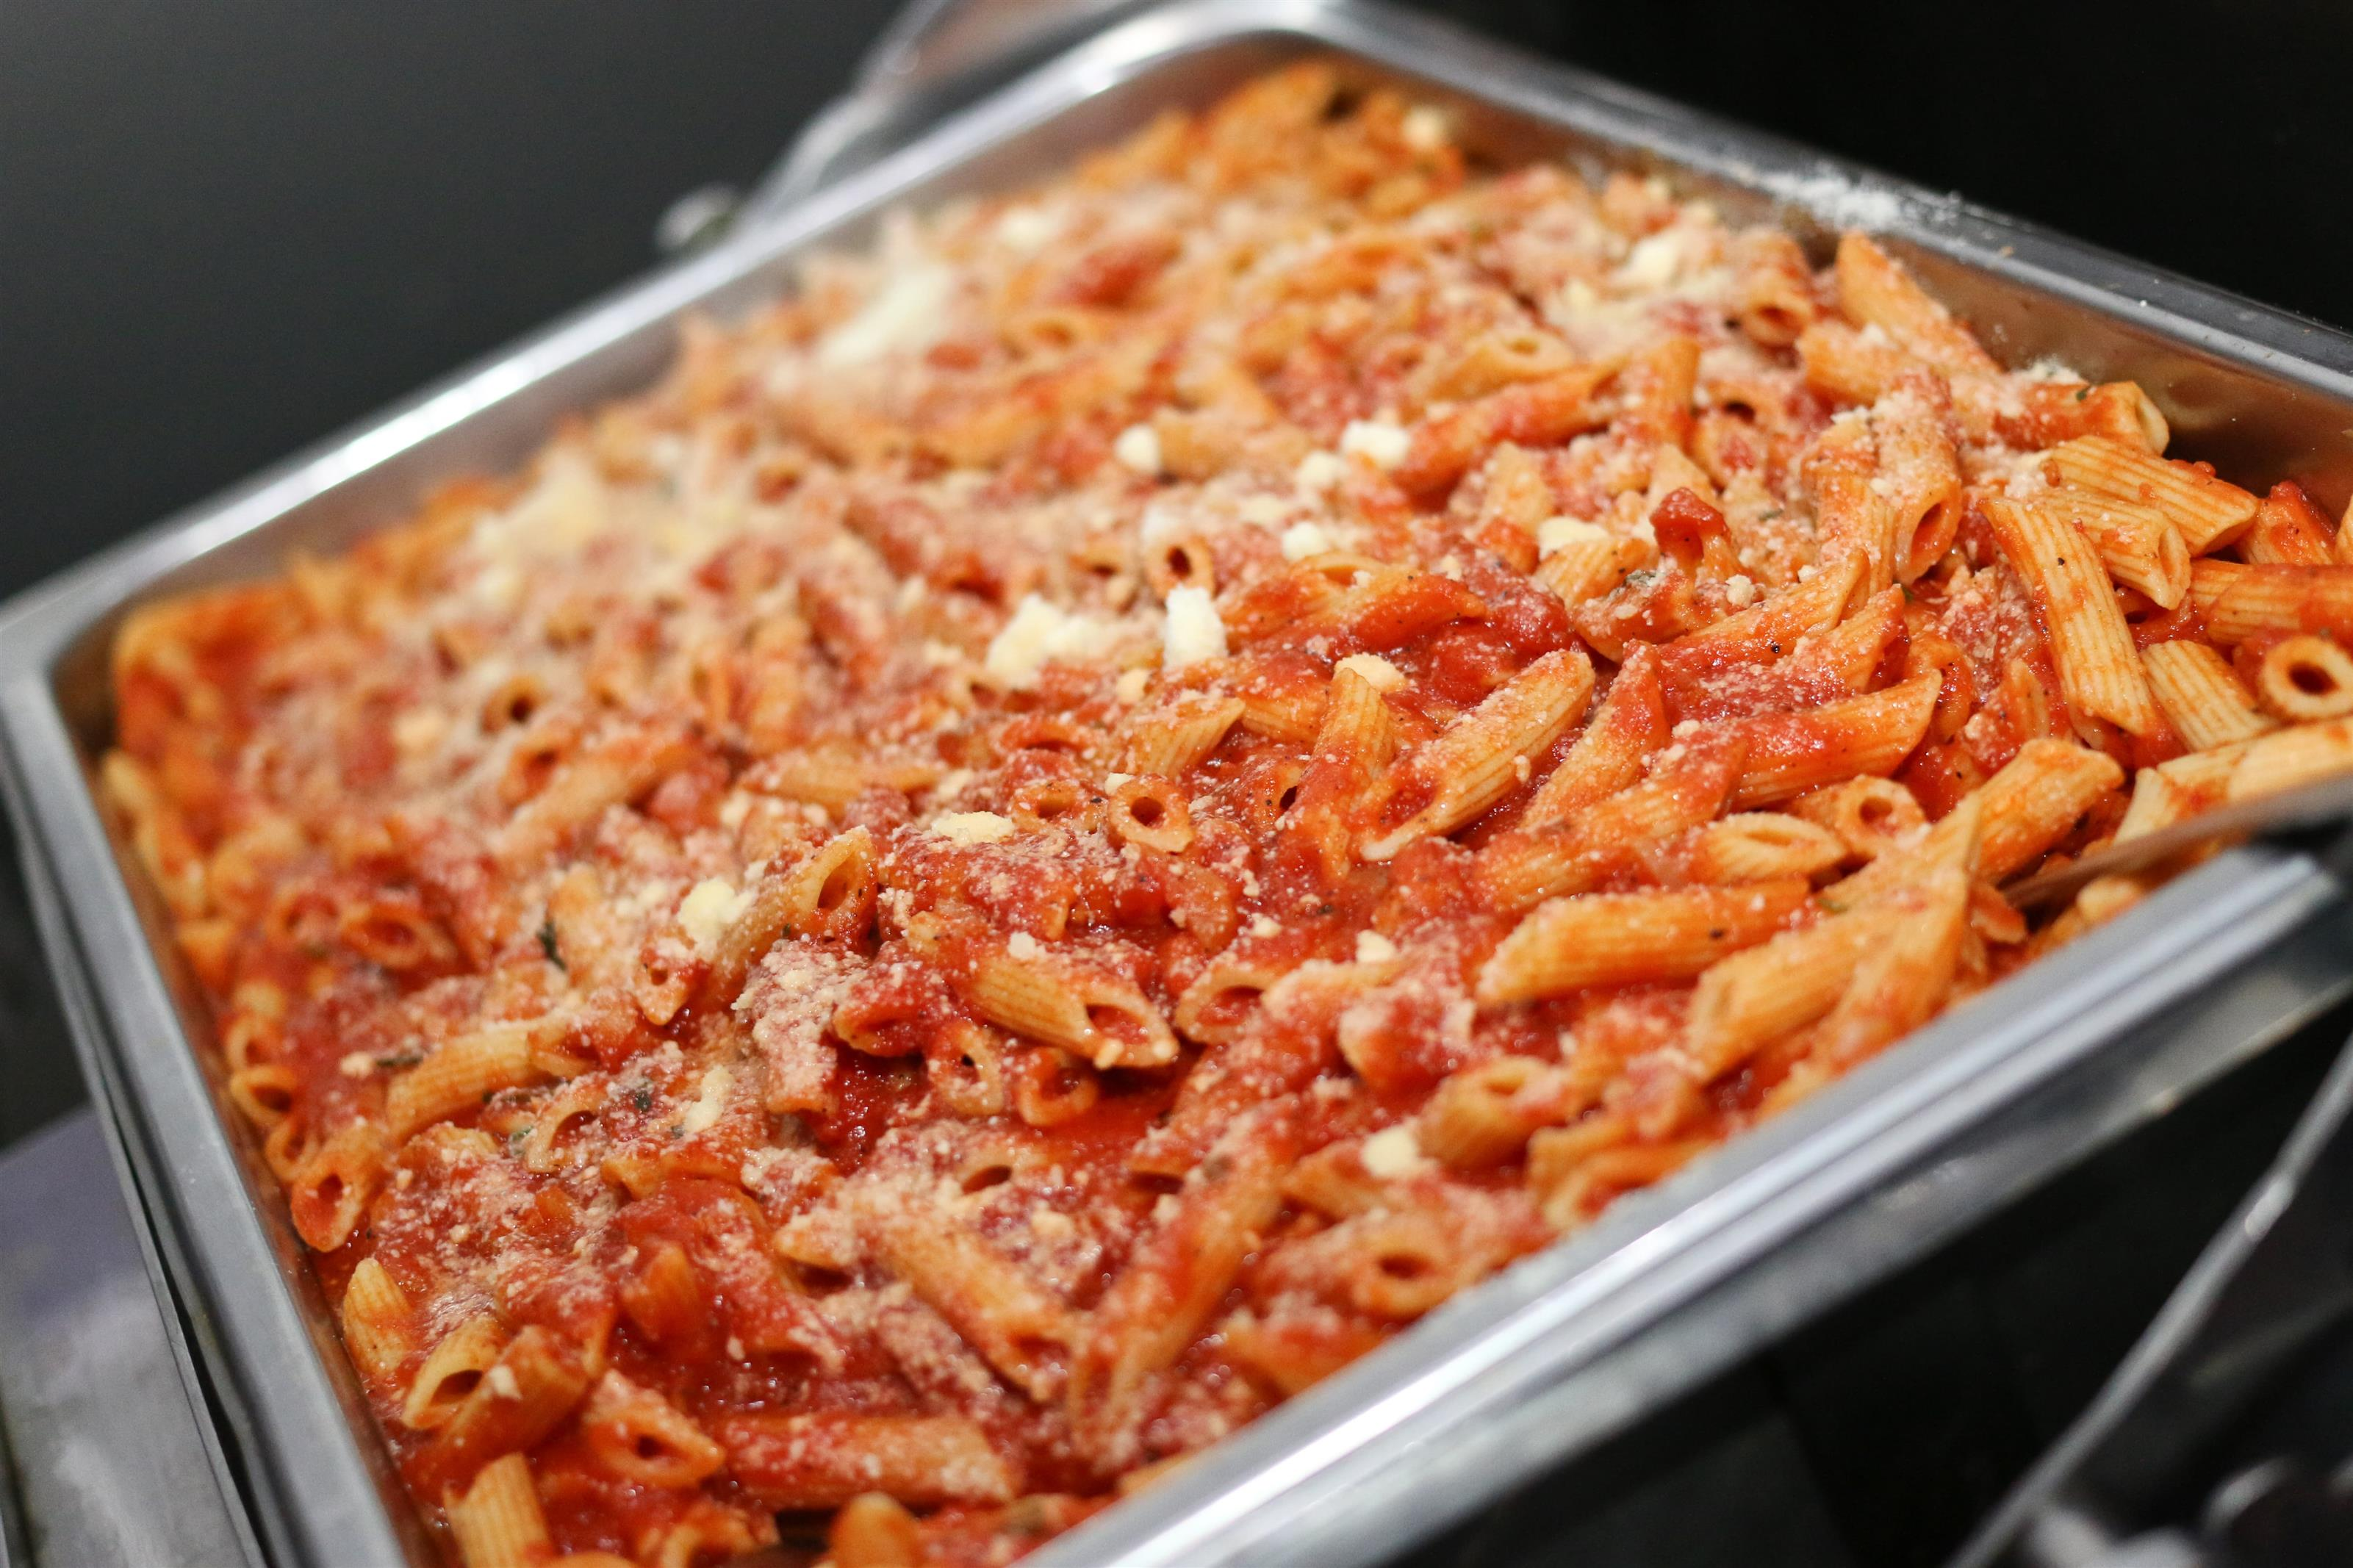 baked ziti in a metal tin covered with cheese